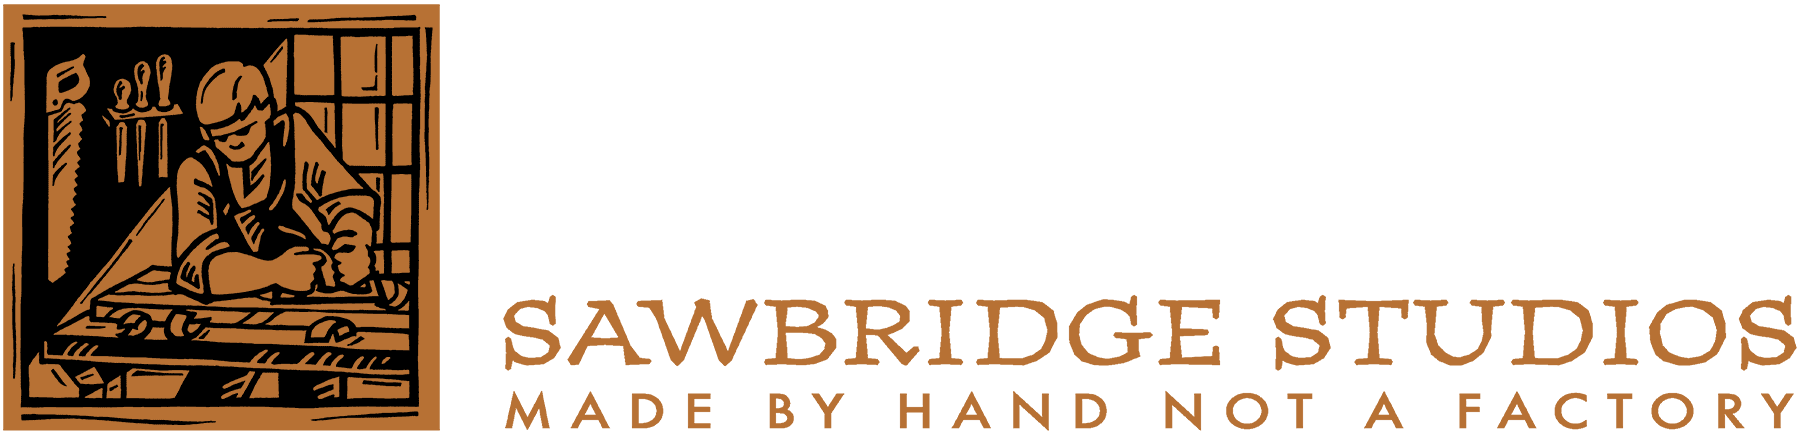 Sawbridge Studios